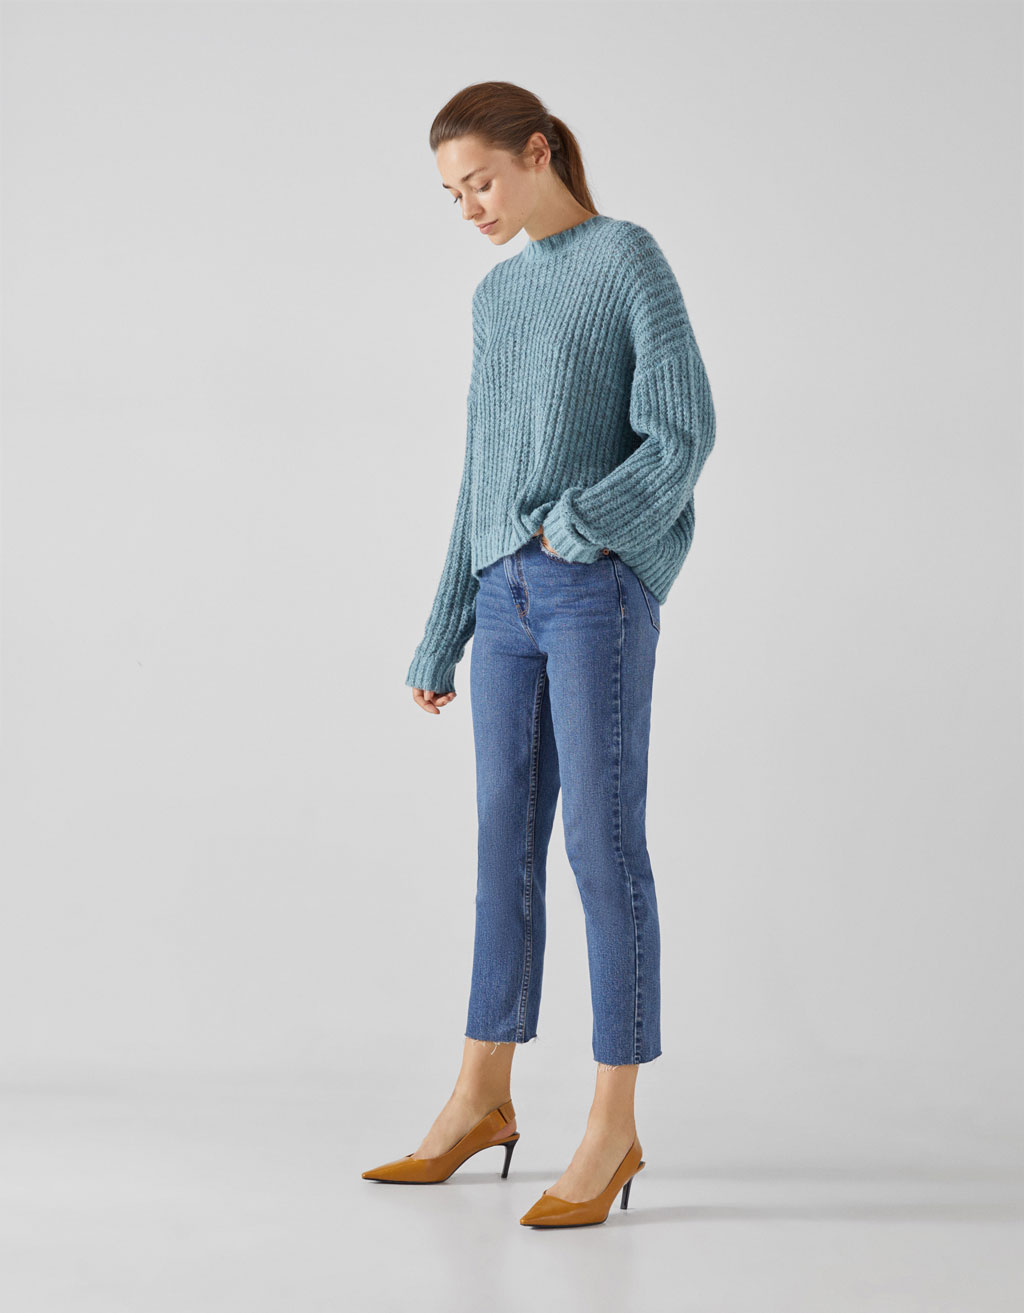 Straight cropped high waist jeans